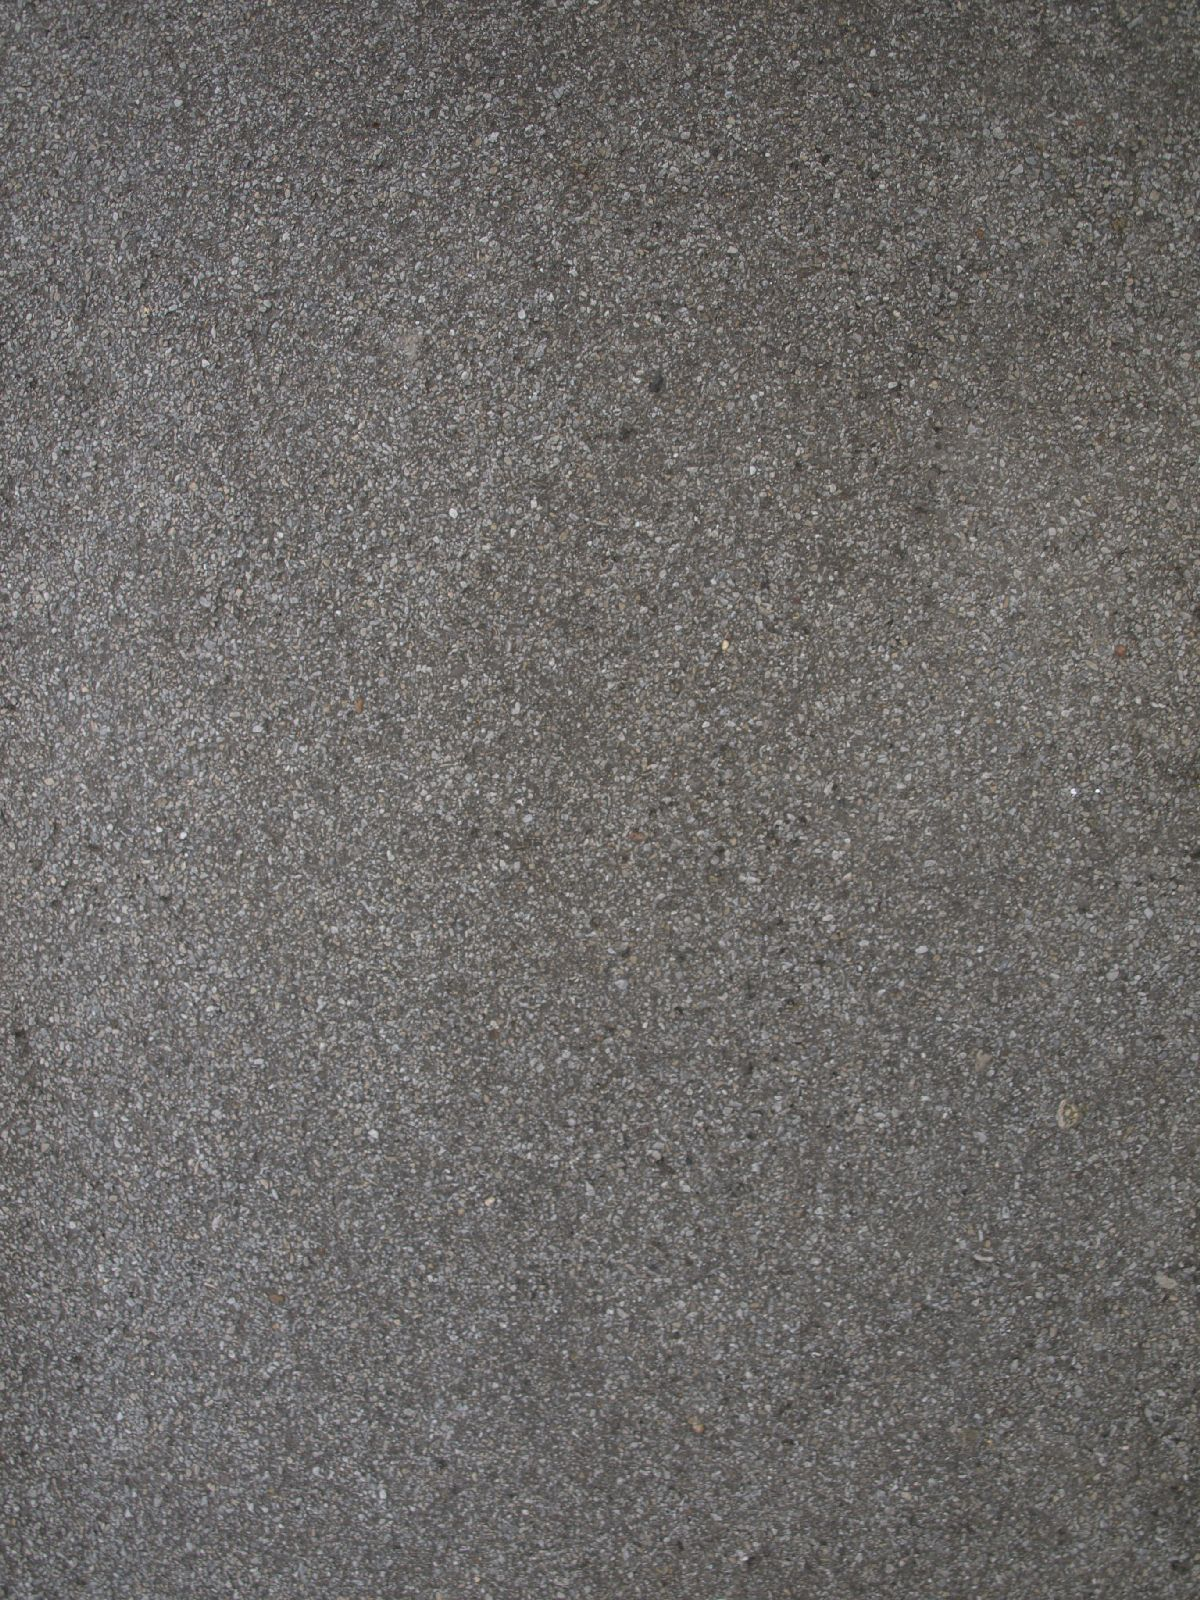 Ground-Nature_Texture_A_P4120978